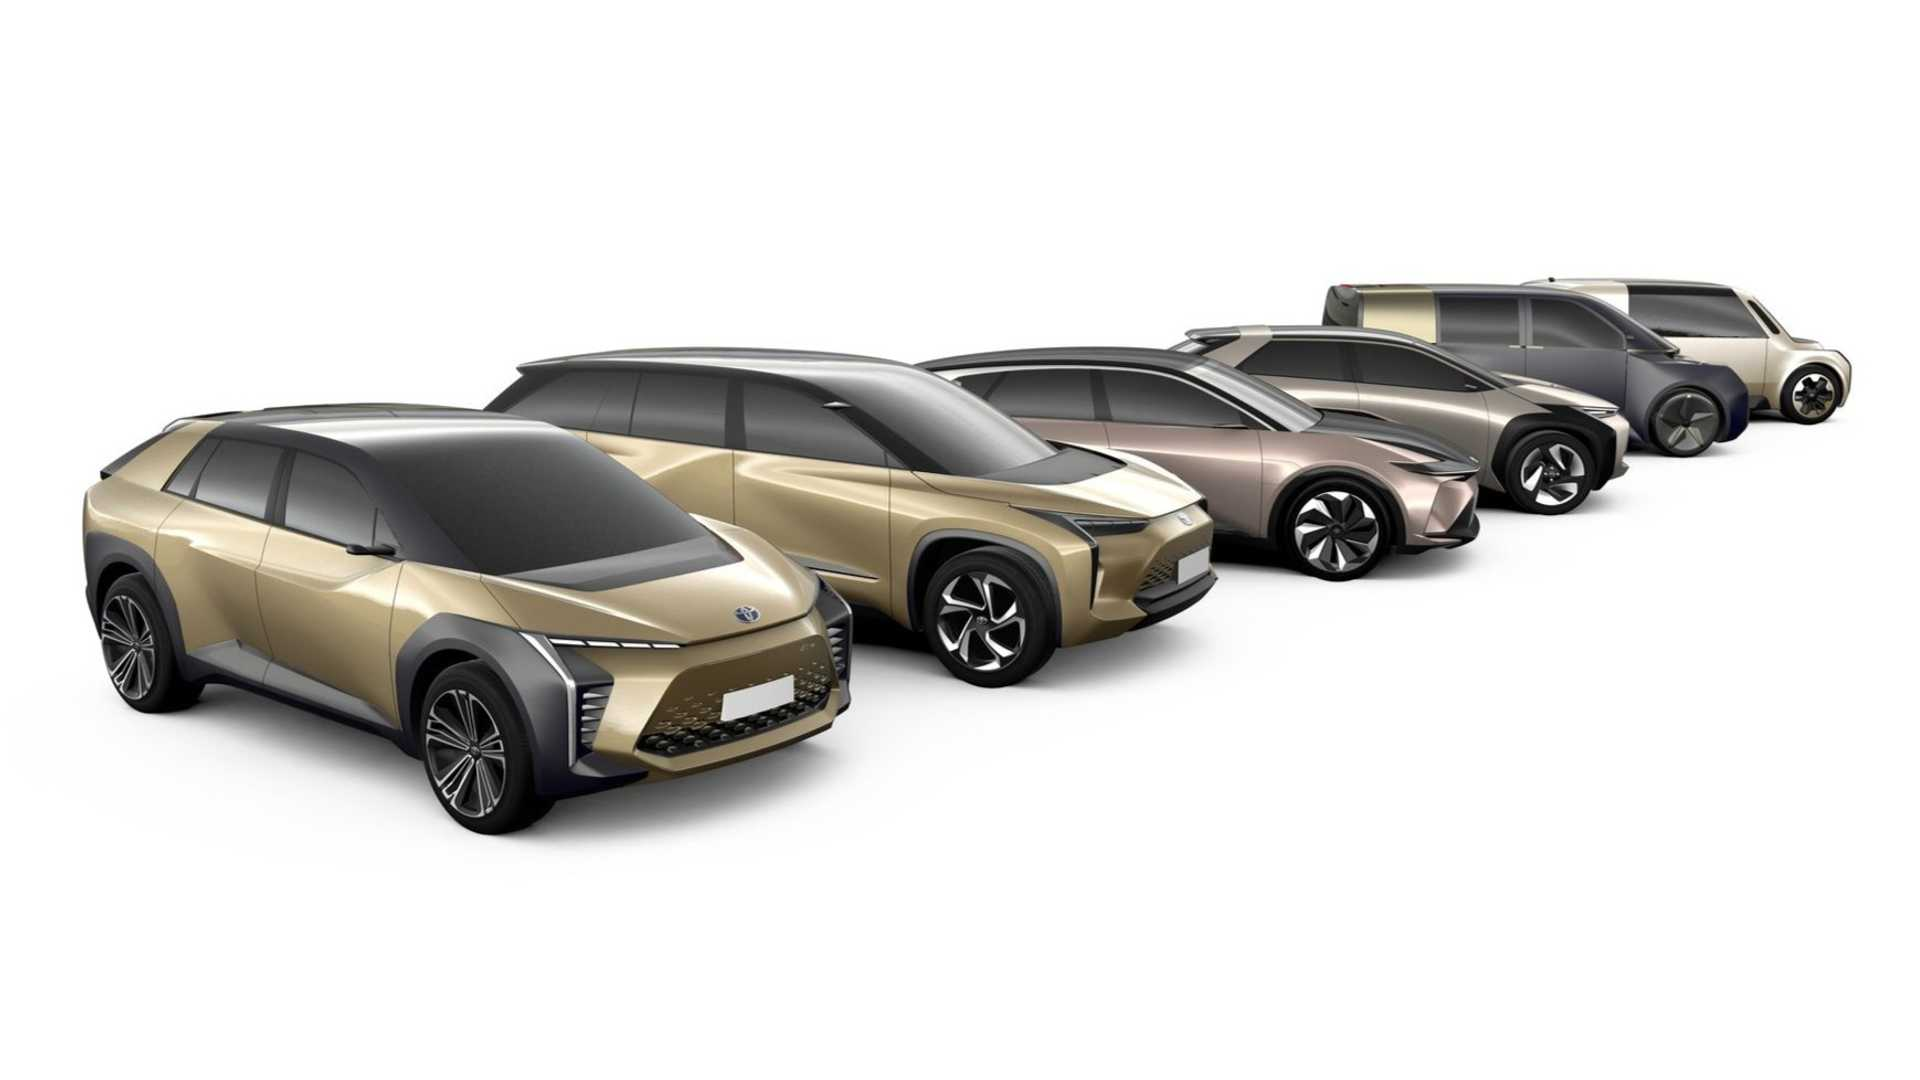 Toyota to sell 500,000 EVs in 2025, only 10,000 in 2020